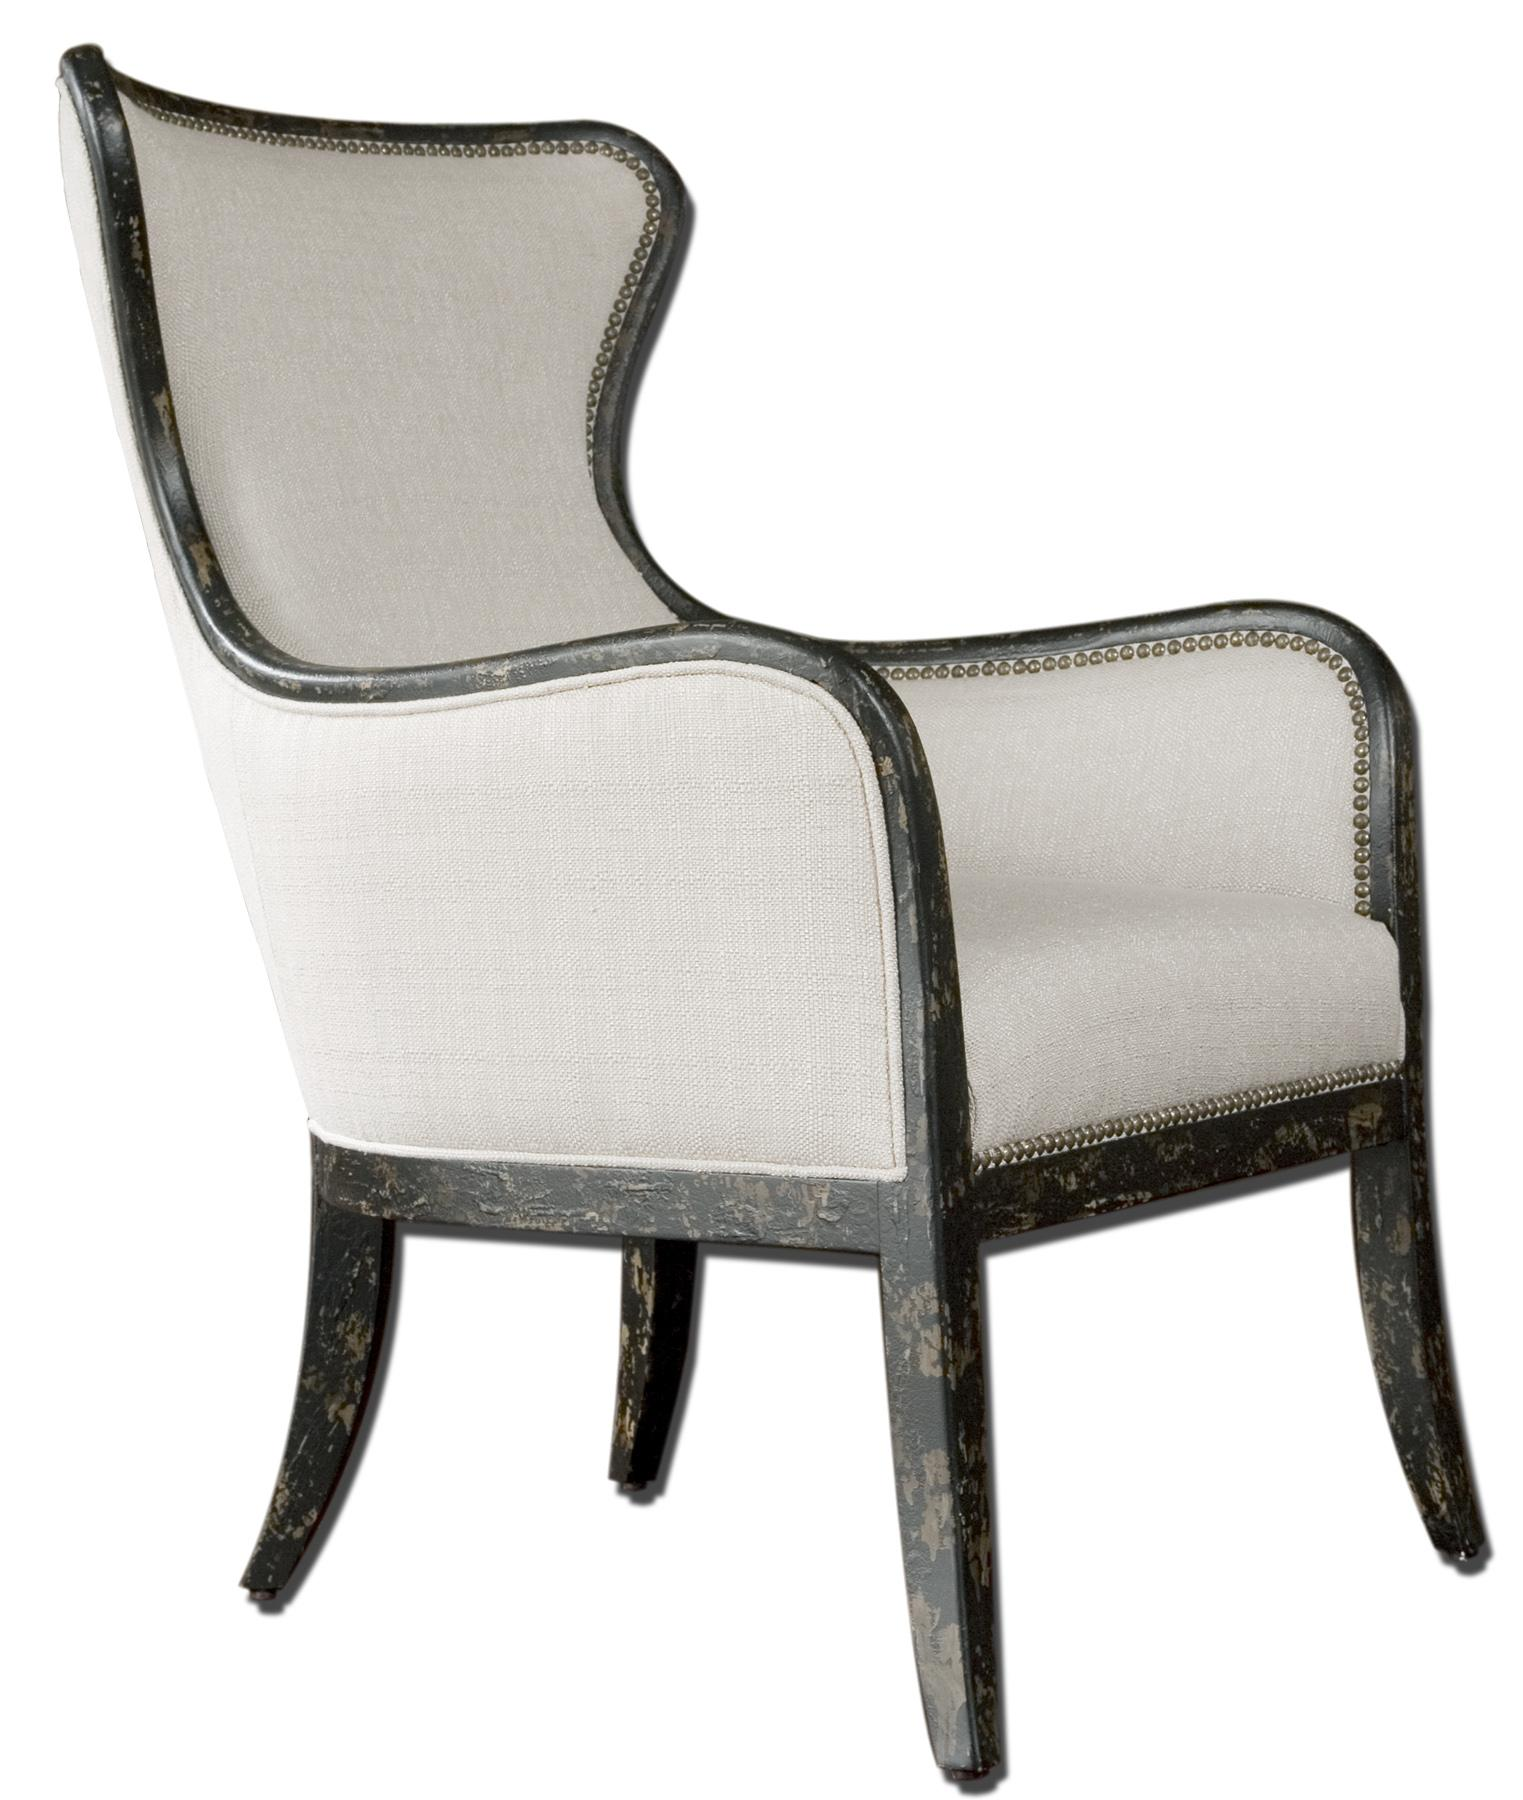 black and white accent chairs with arms cow print dining chair uttermost furniture 23073 sandy modern wing